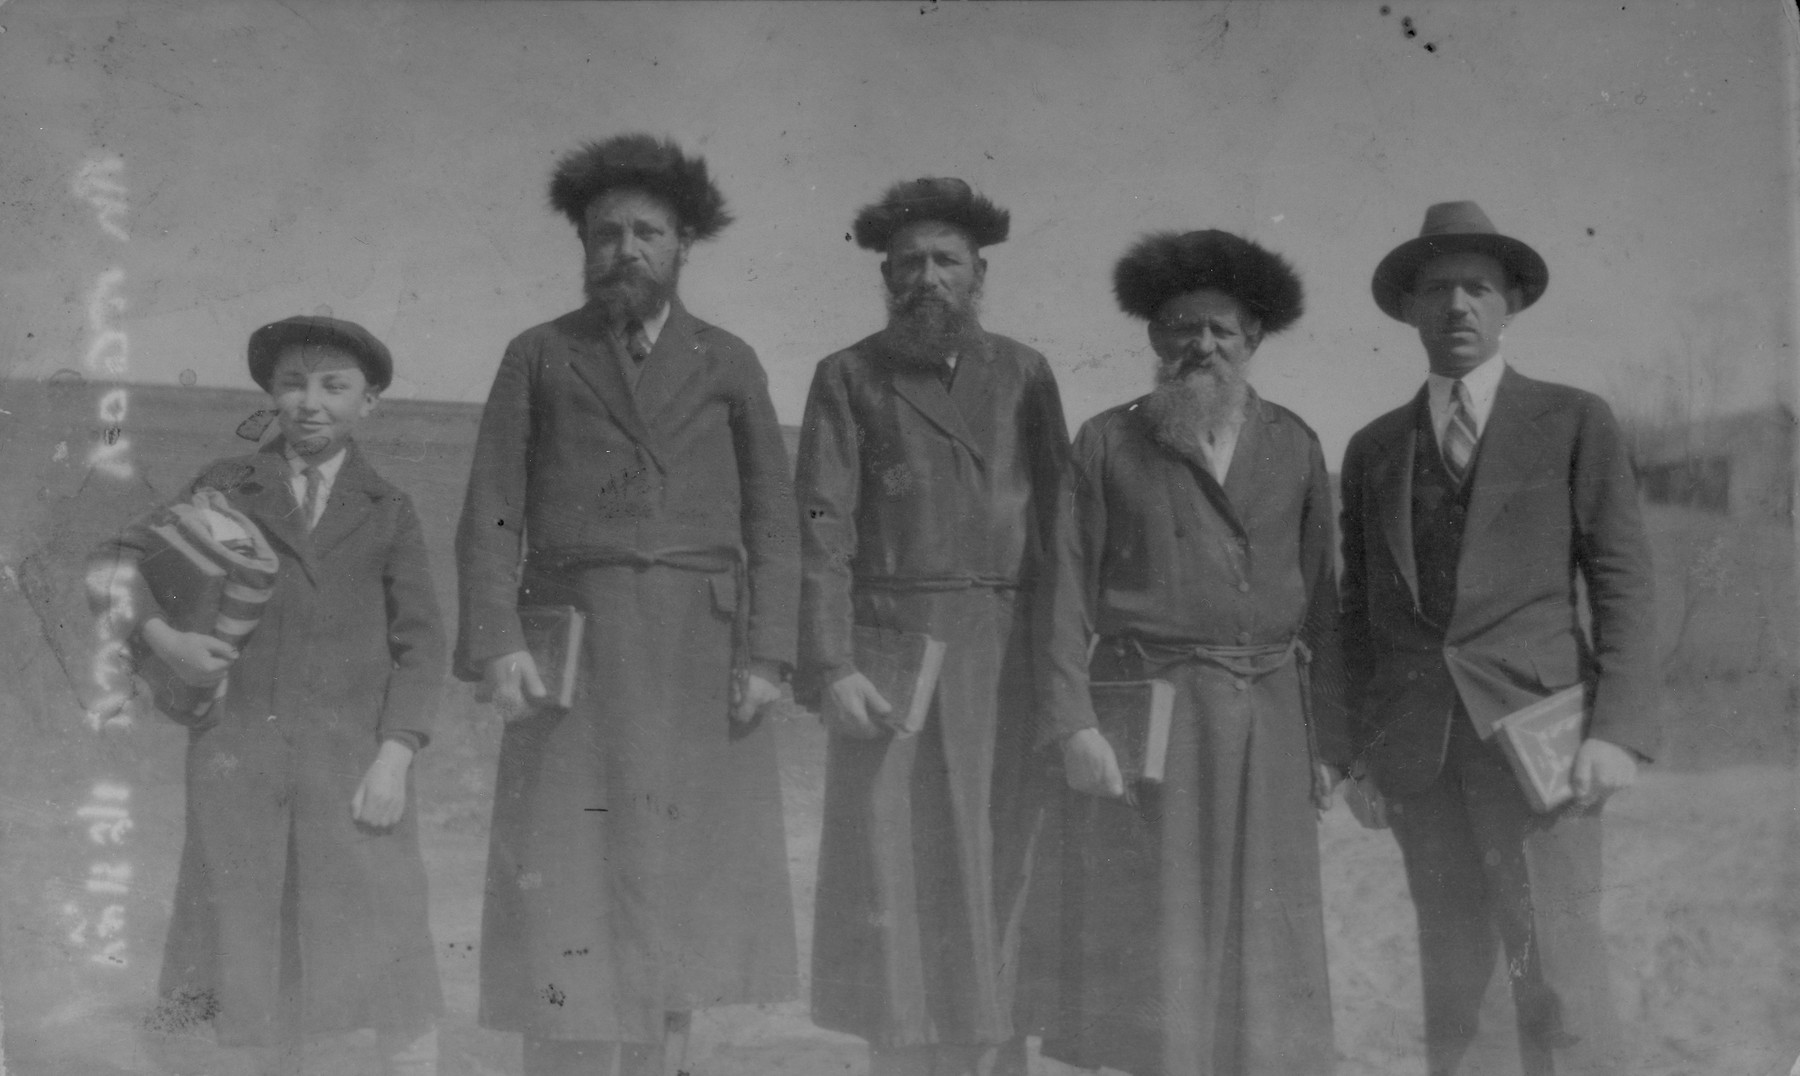 Group portrait of Hasidic Jews standing outside holding books in Raczyna, Poland.    Pictured from left to right are: Chaim Yankel Gurfein, Lejzer Gurfein, Moshe Yosl Dudlsack, Itzhak Dudlsack, and an unidentified American visitor.